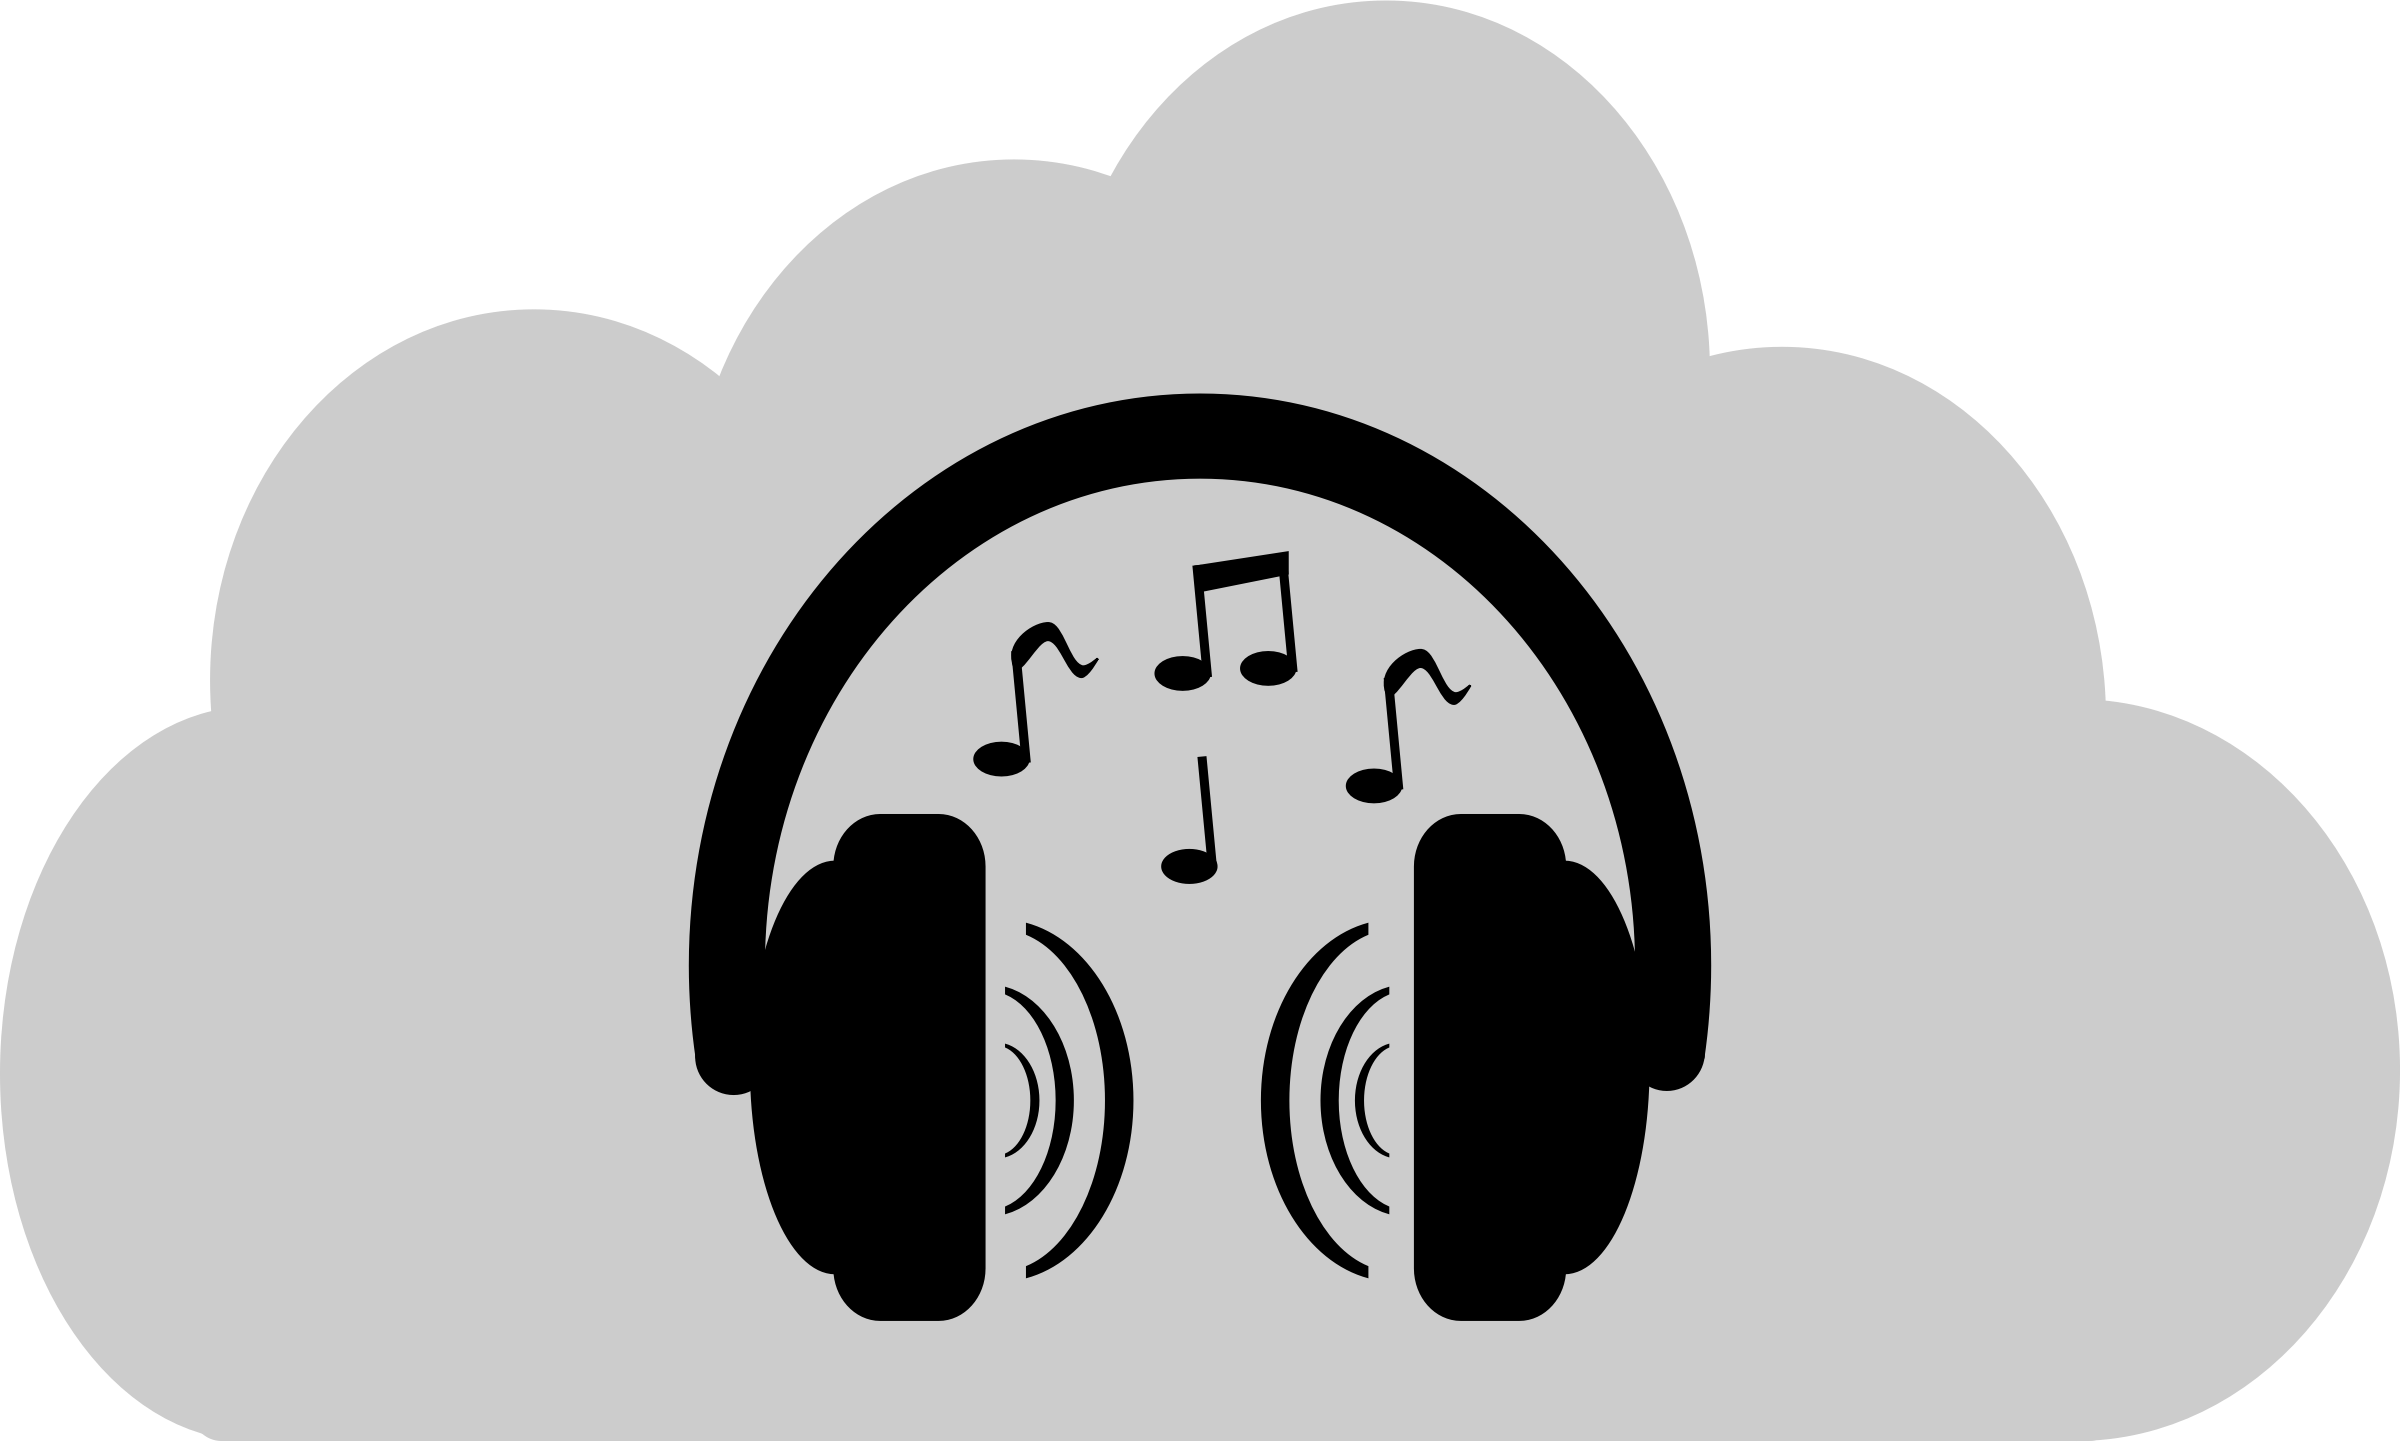 Music clouds png. Clipart cloud sound big